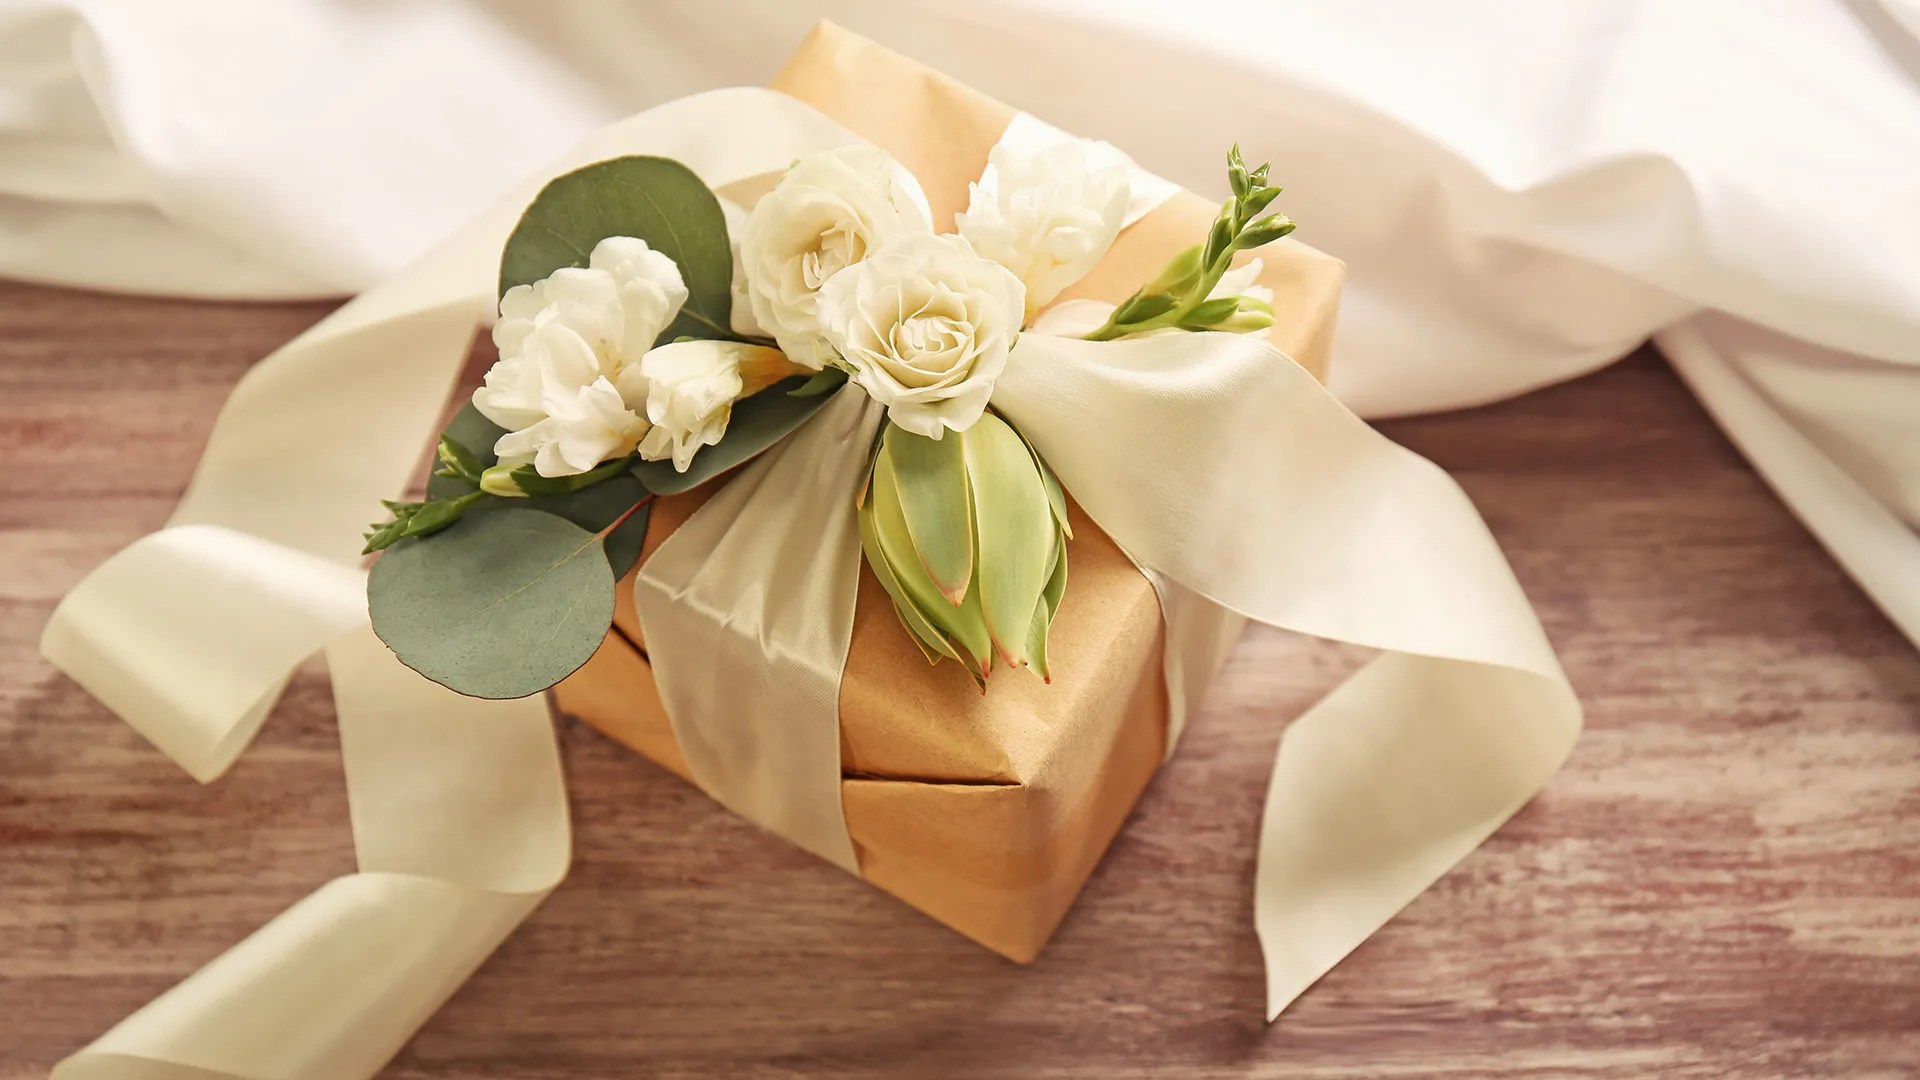 How To Choose The Perfect Wedding Gift For A Couple